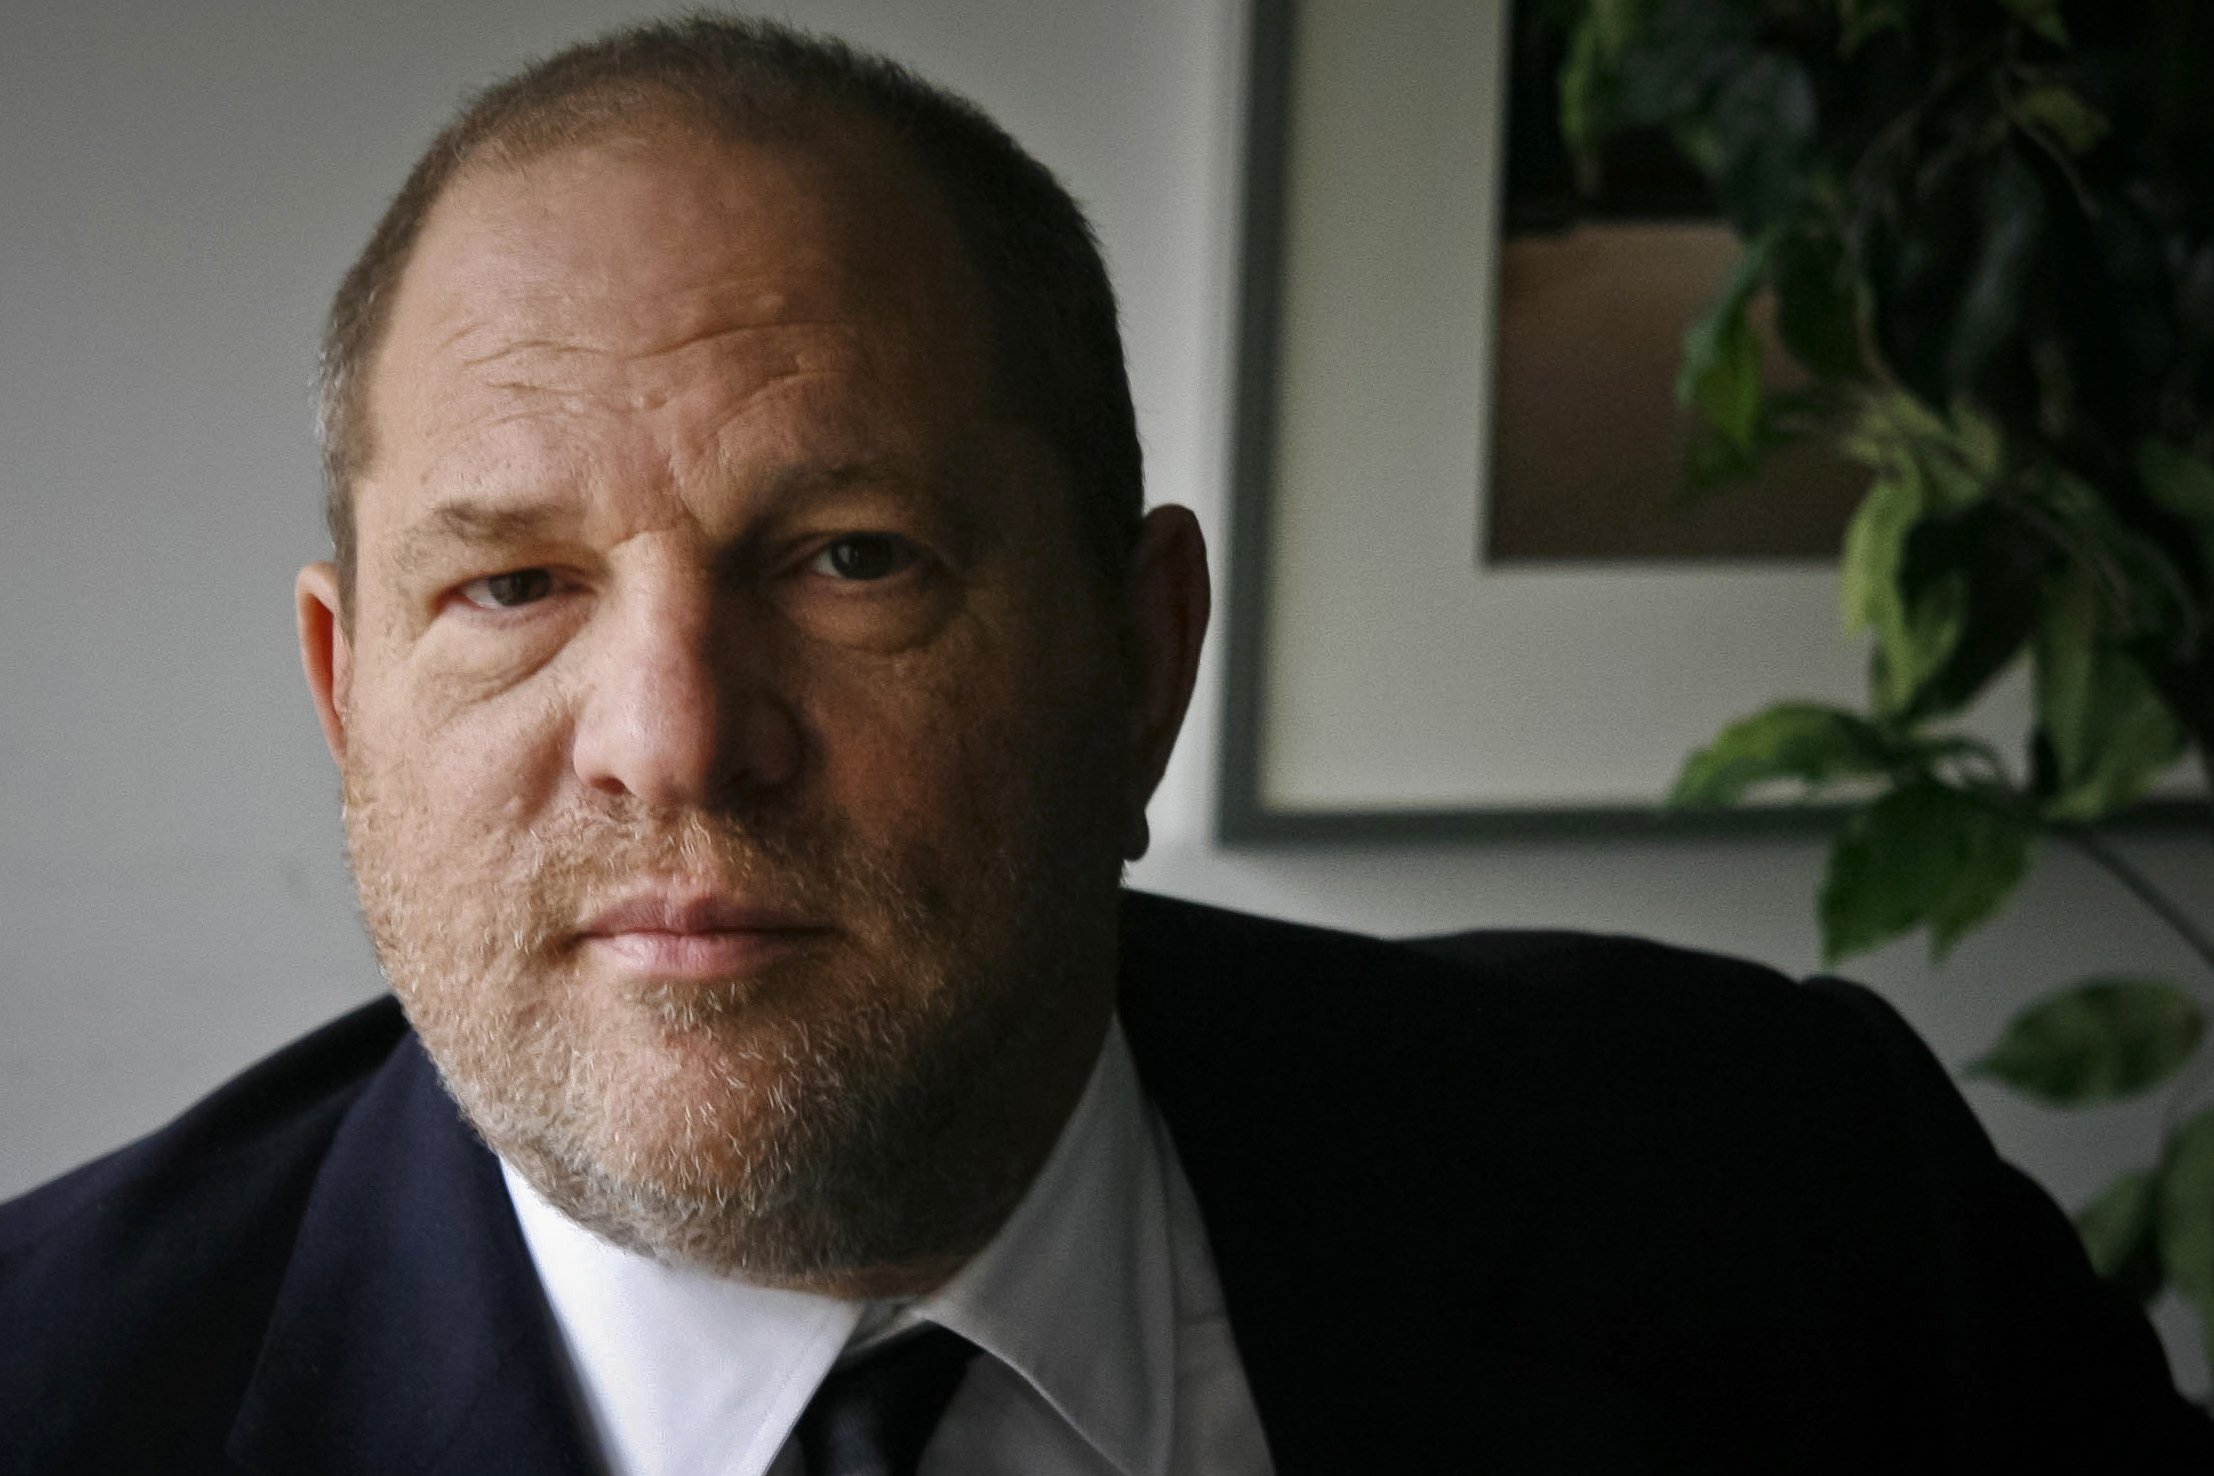 NYPD claim they have 'quite a bit of evidence' in case against Harvey Weinstein